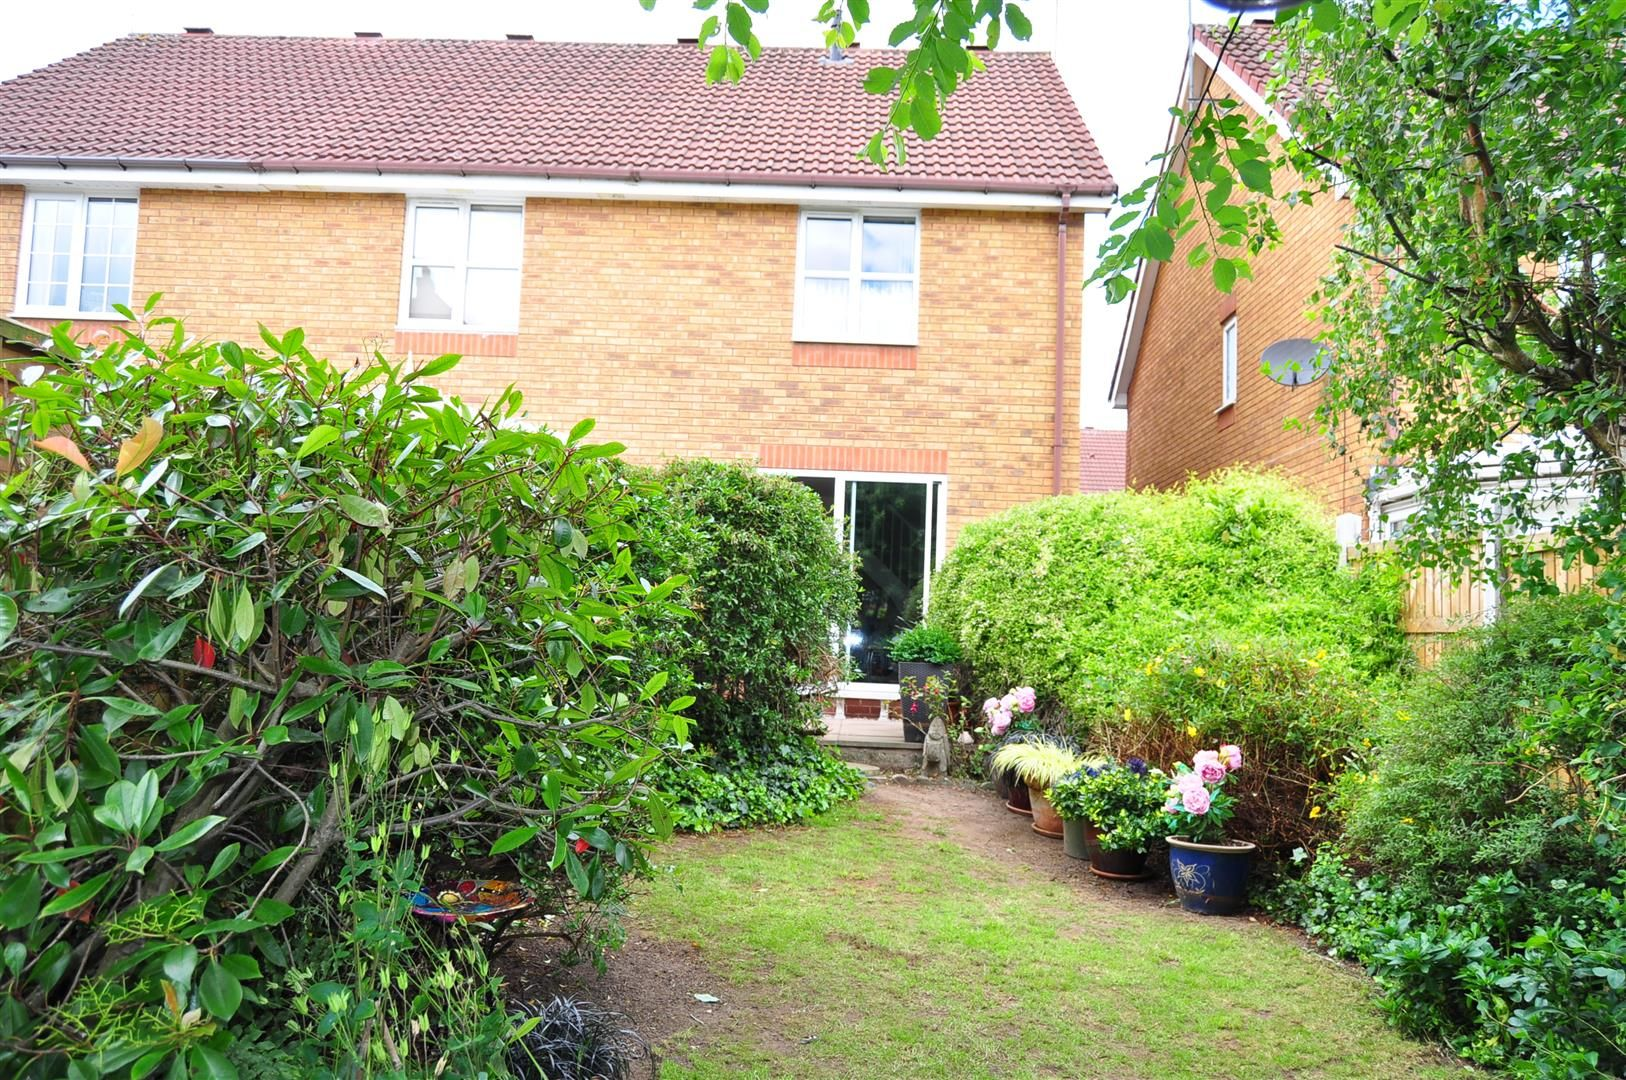 2 bed end-of-terrace for sale  - Property Image 11